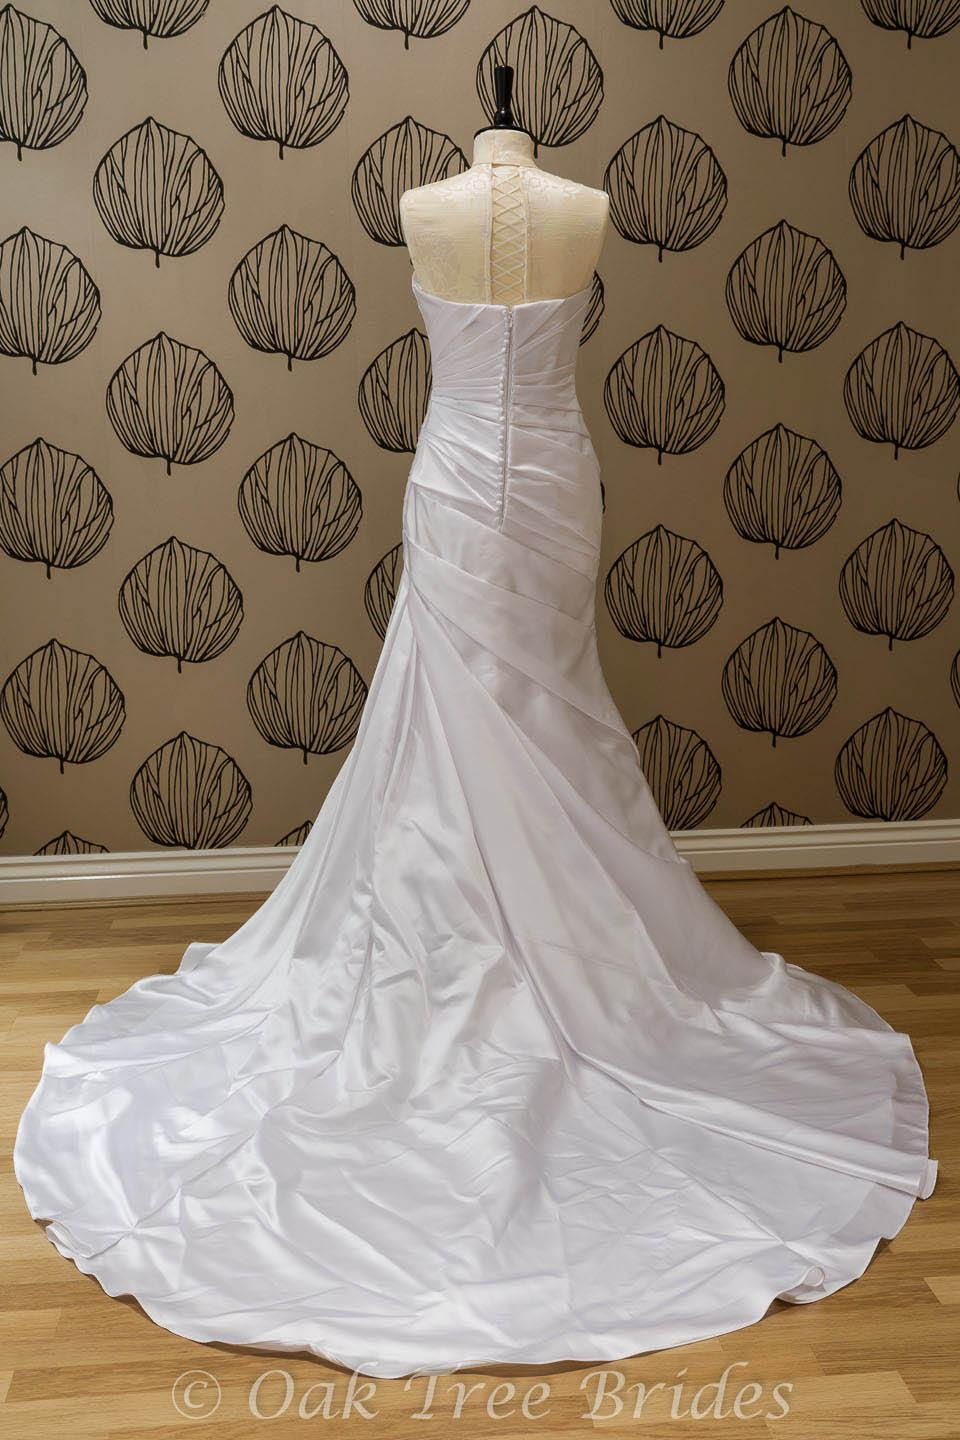 La sposa fanal oak tree brides for La sposa wedding dress price